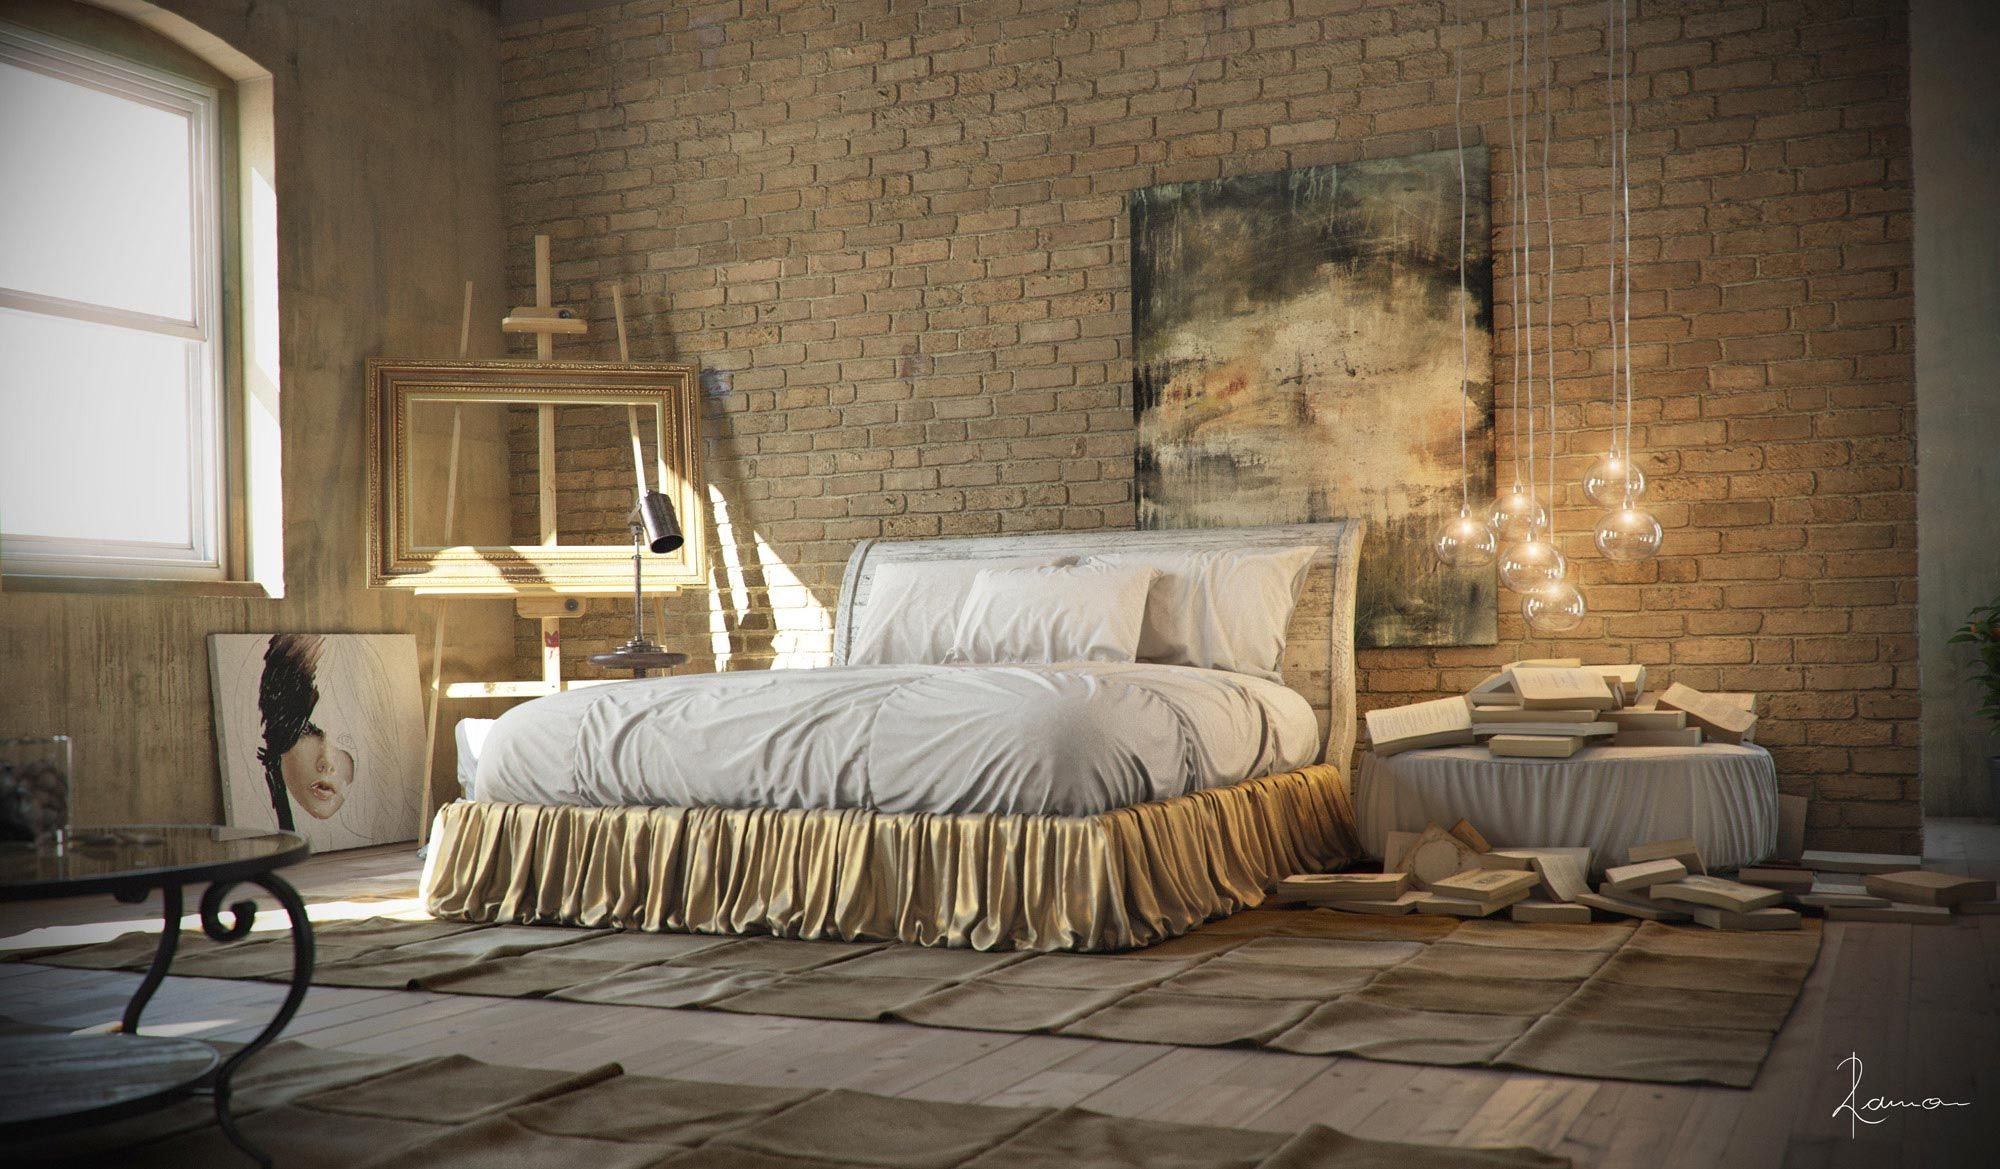 21 industrial bedroom designs decoholic Photos of bedroom designs